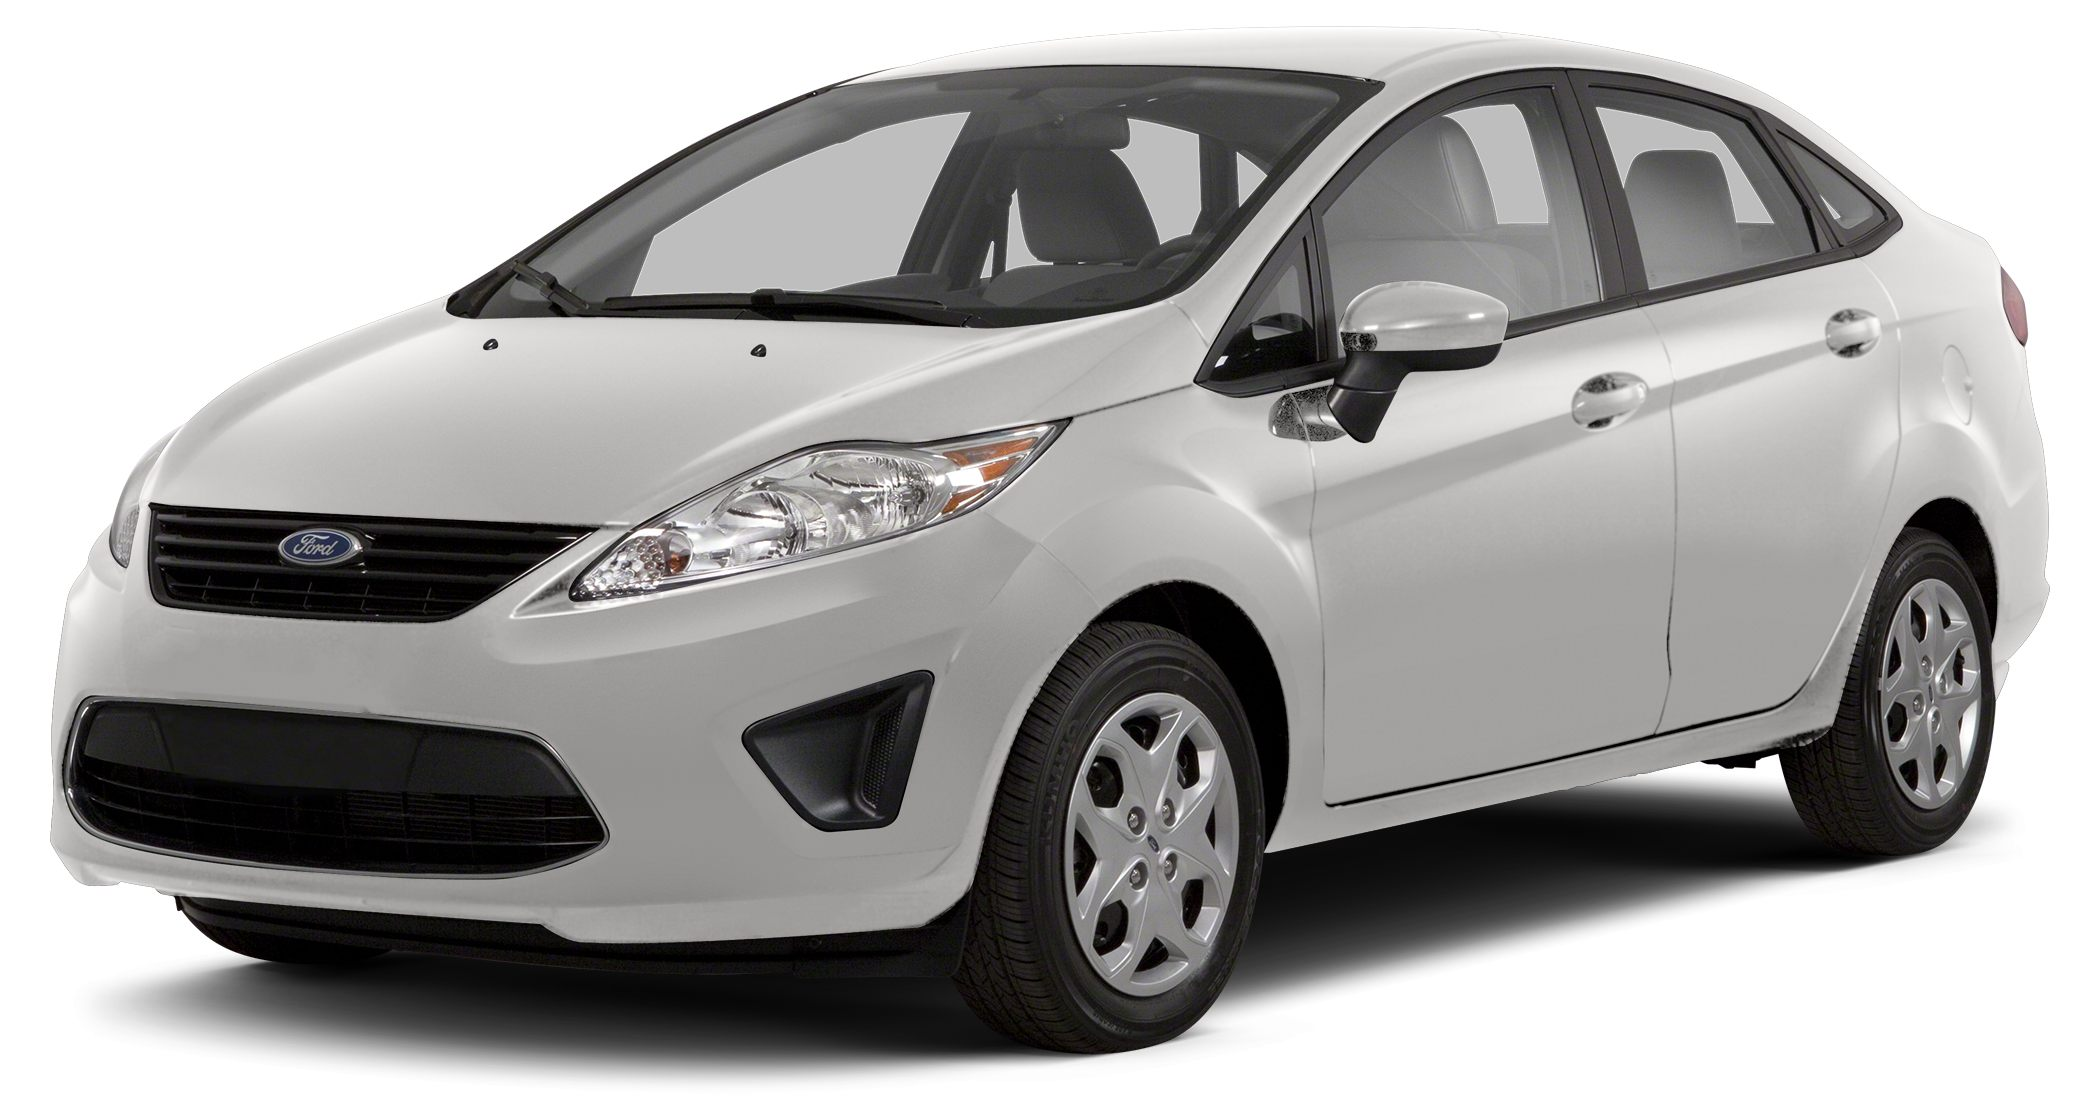 2013 Ford Fiesta SE 2013 Ford Fiesta SE in White Youll NEVER pay too much at Route 44 Hyundai W